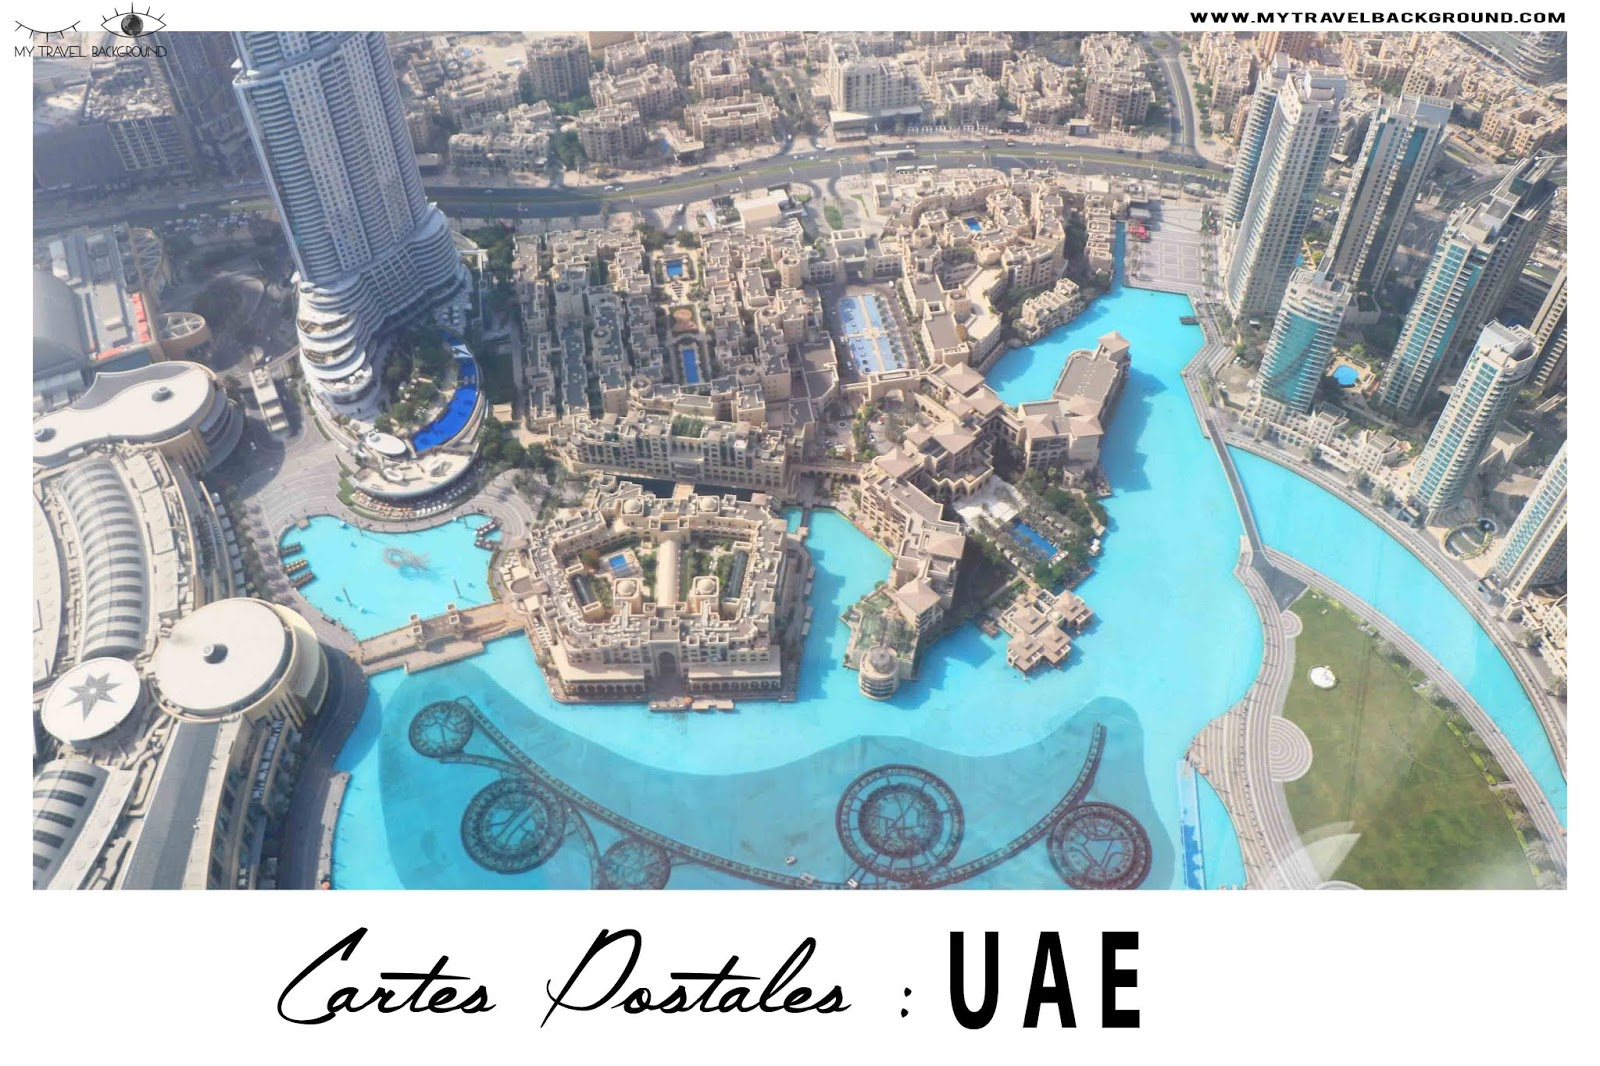 My Travel Background : cartes postales des Emirats Arabes Unis